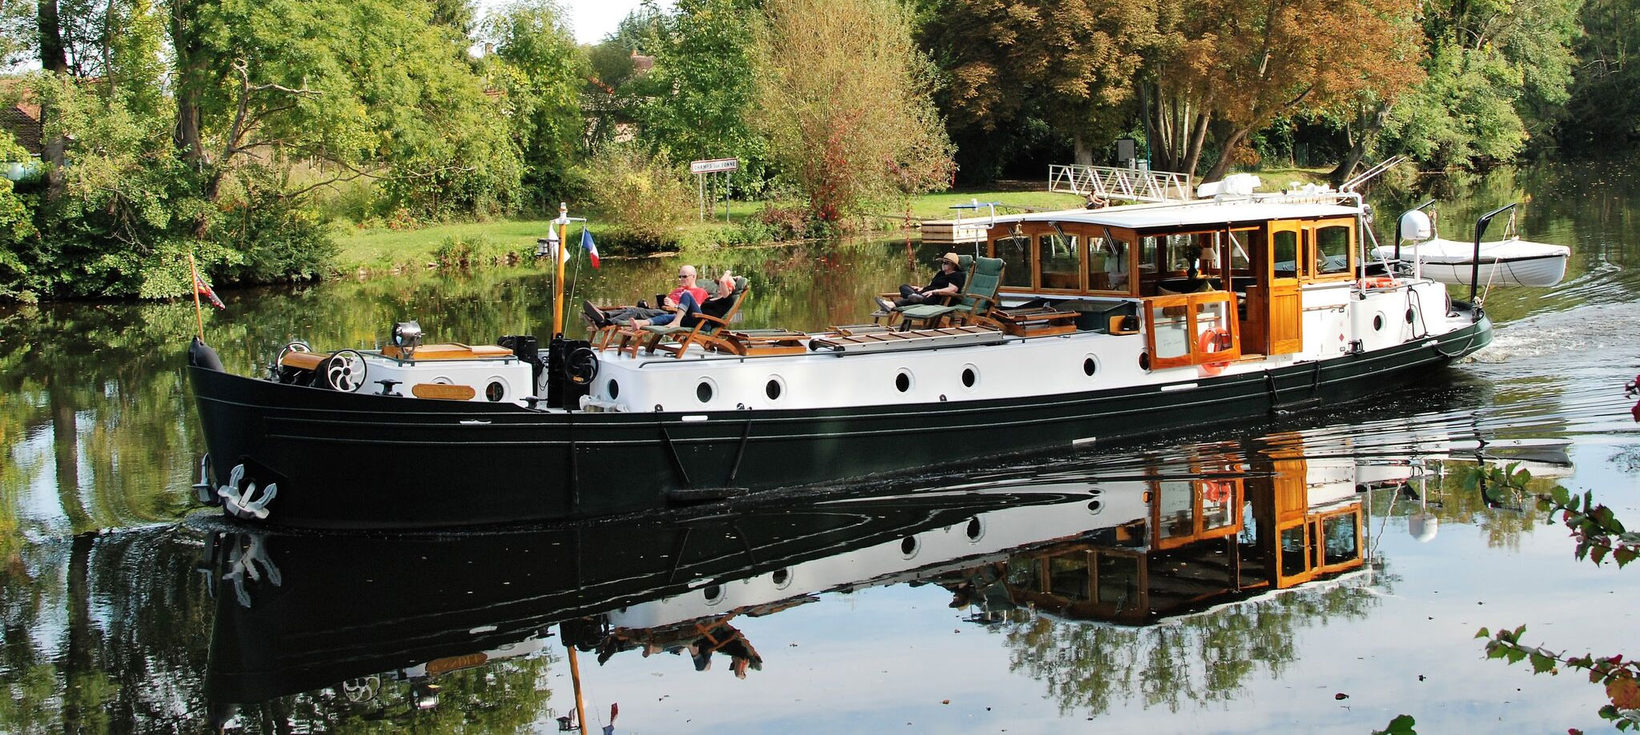 The Randle Cruising on the Yonne